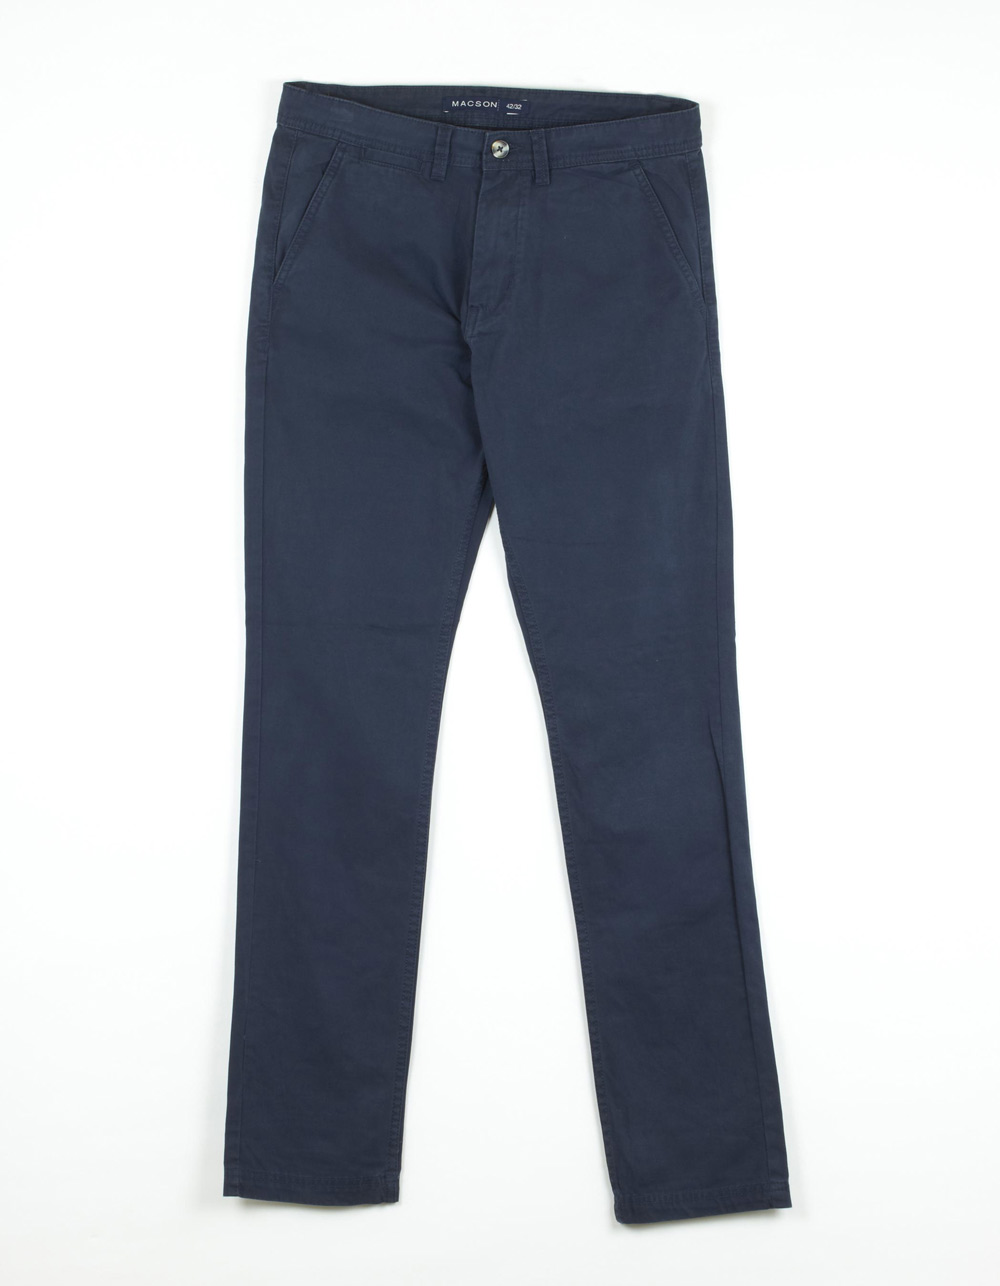 Navy blue chinos trousers - Backside